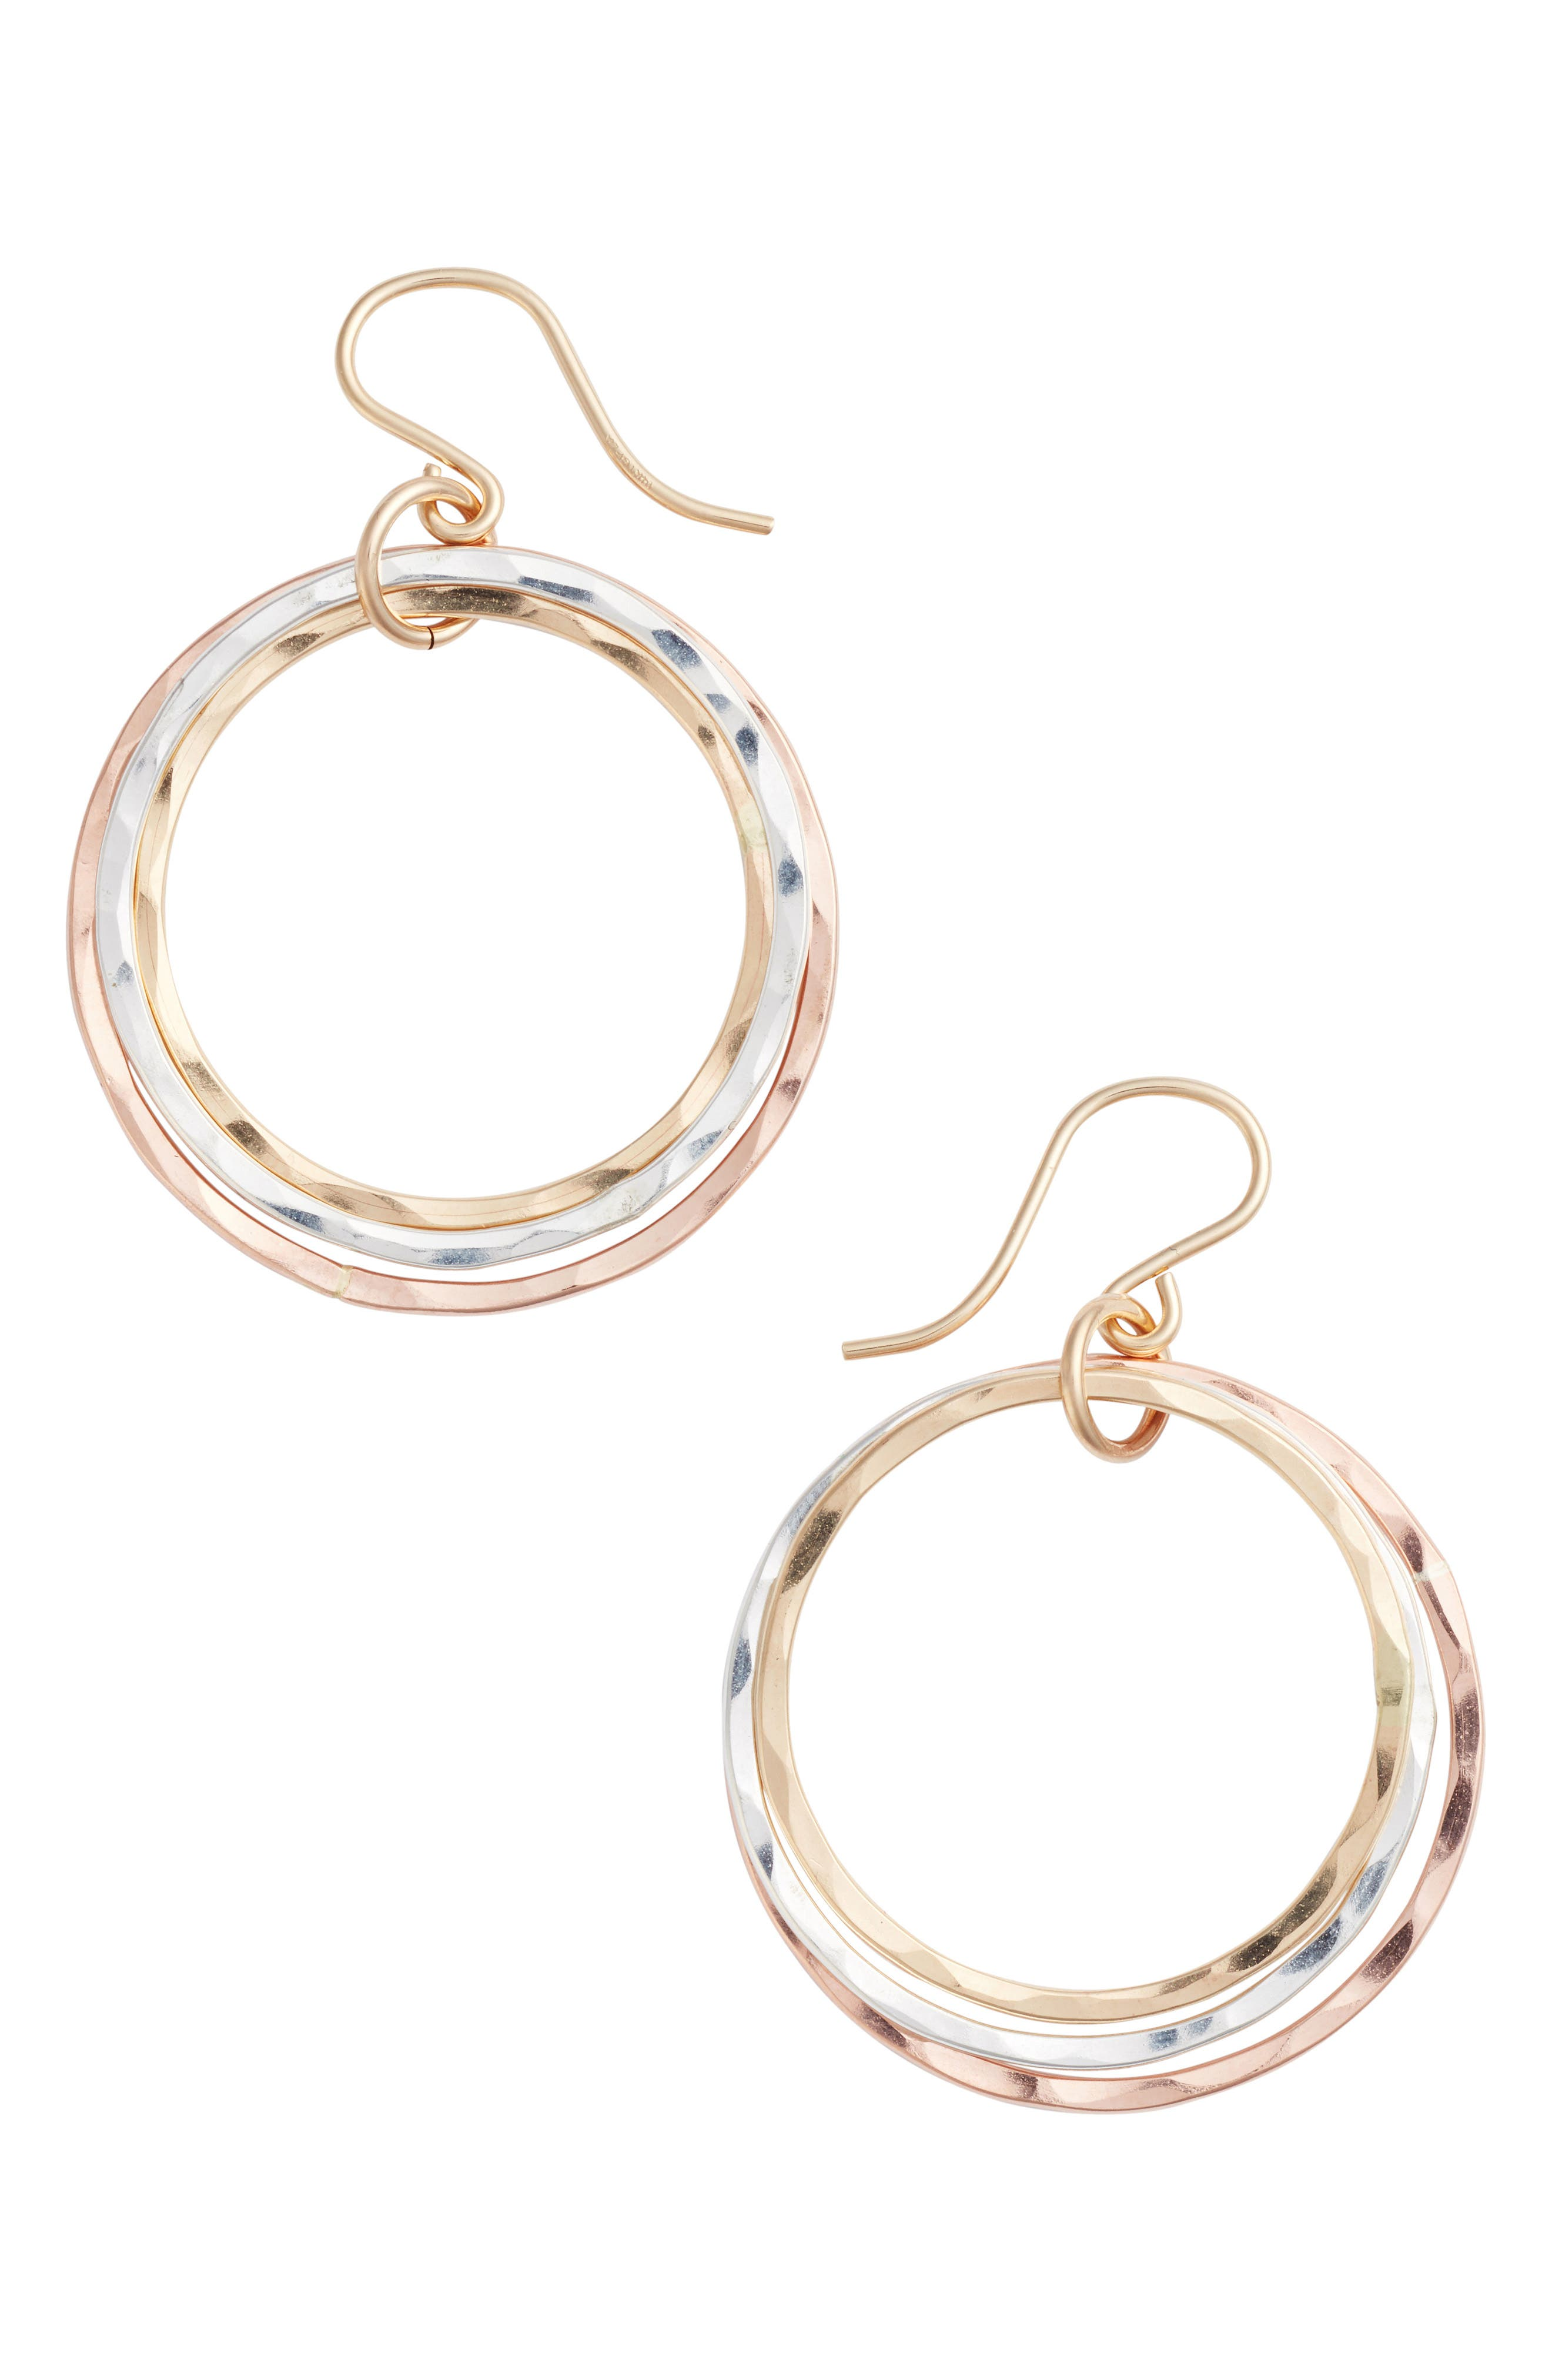 Nashelle Wellness Small Hoop Earrings